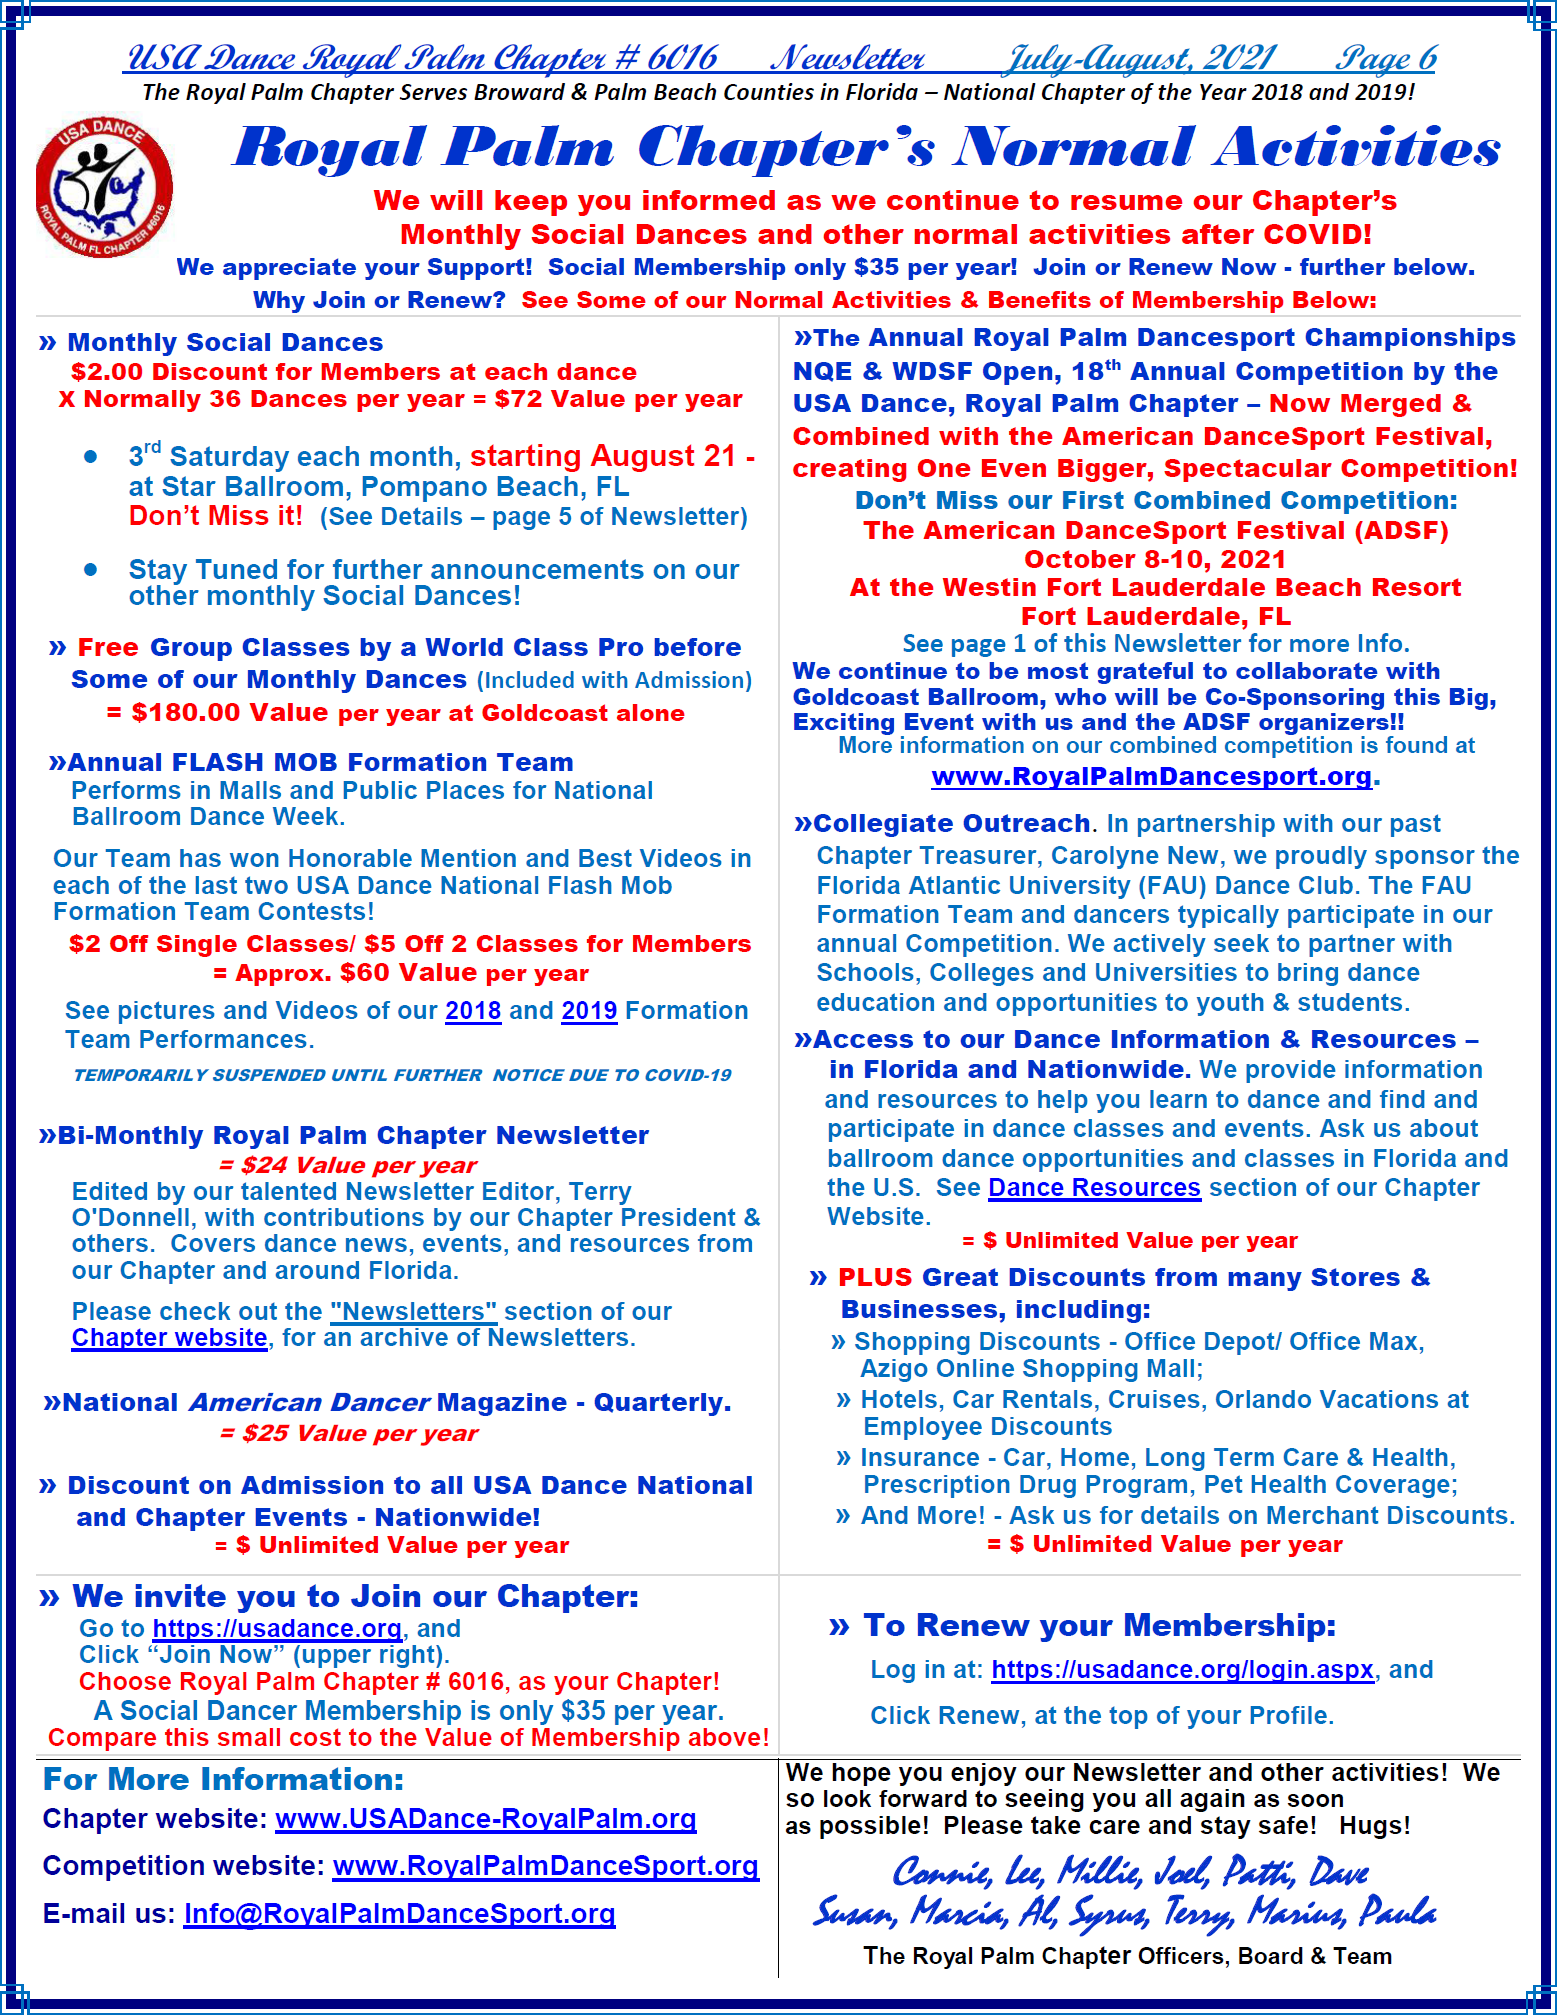 Royal Palm Chapter Normal Activities - p.6 July-Aug Newsletter